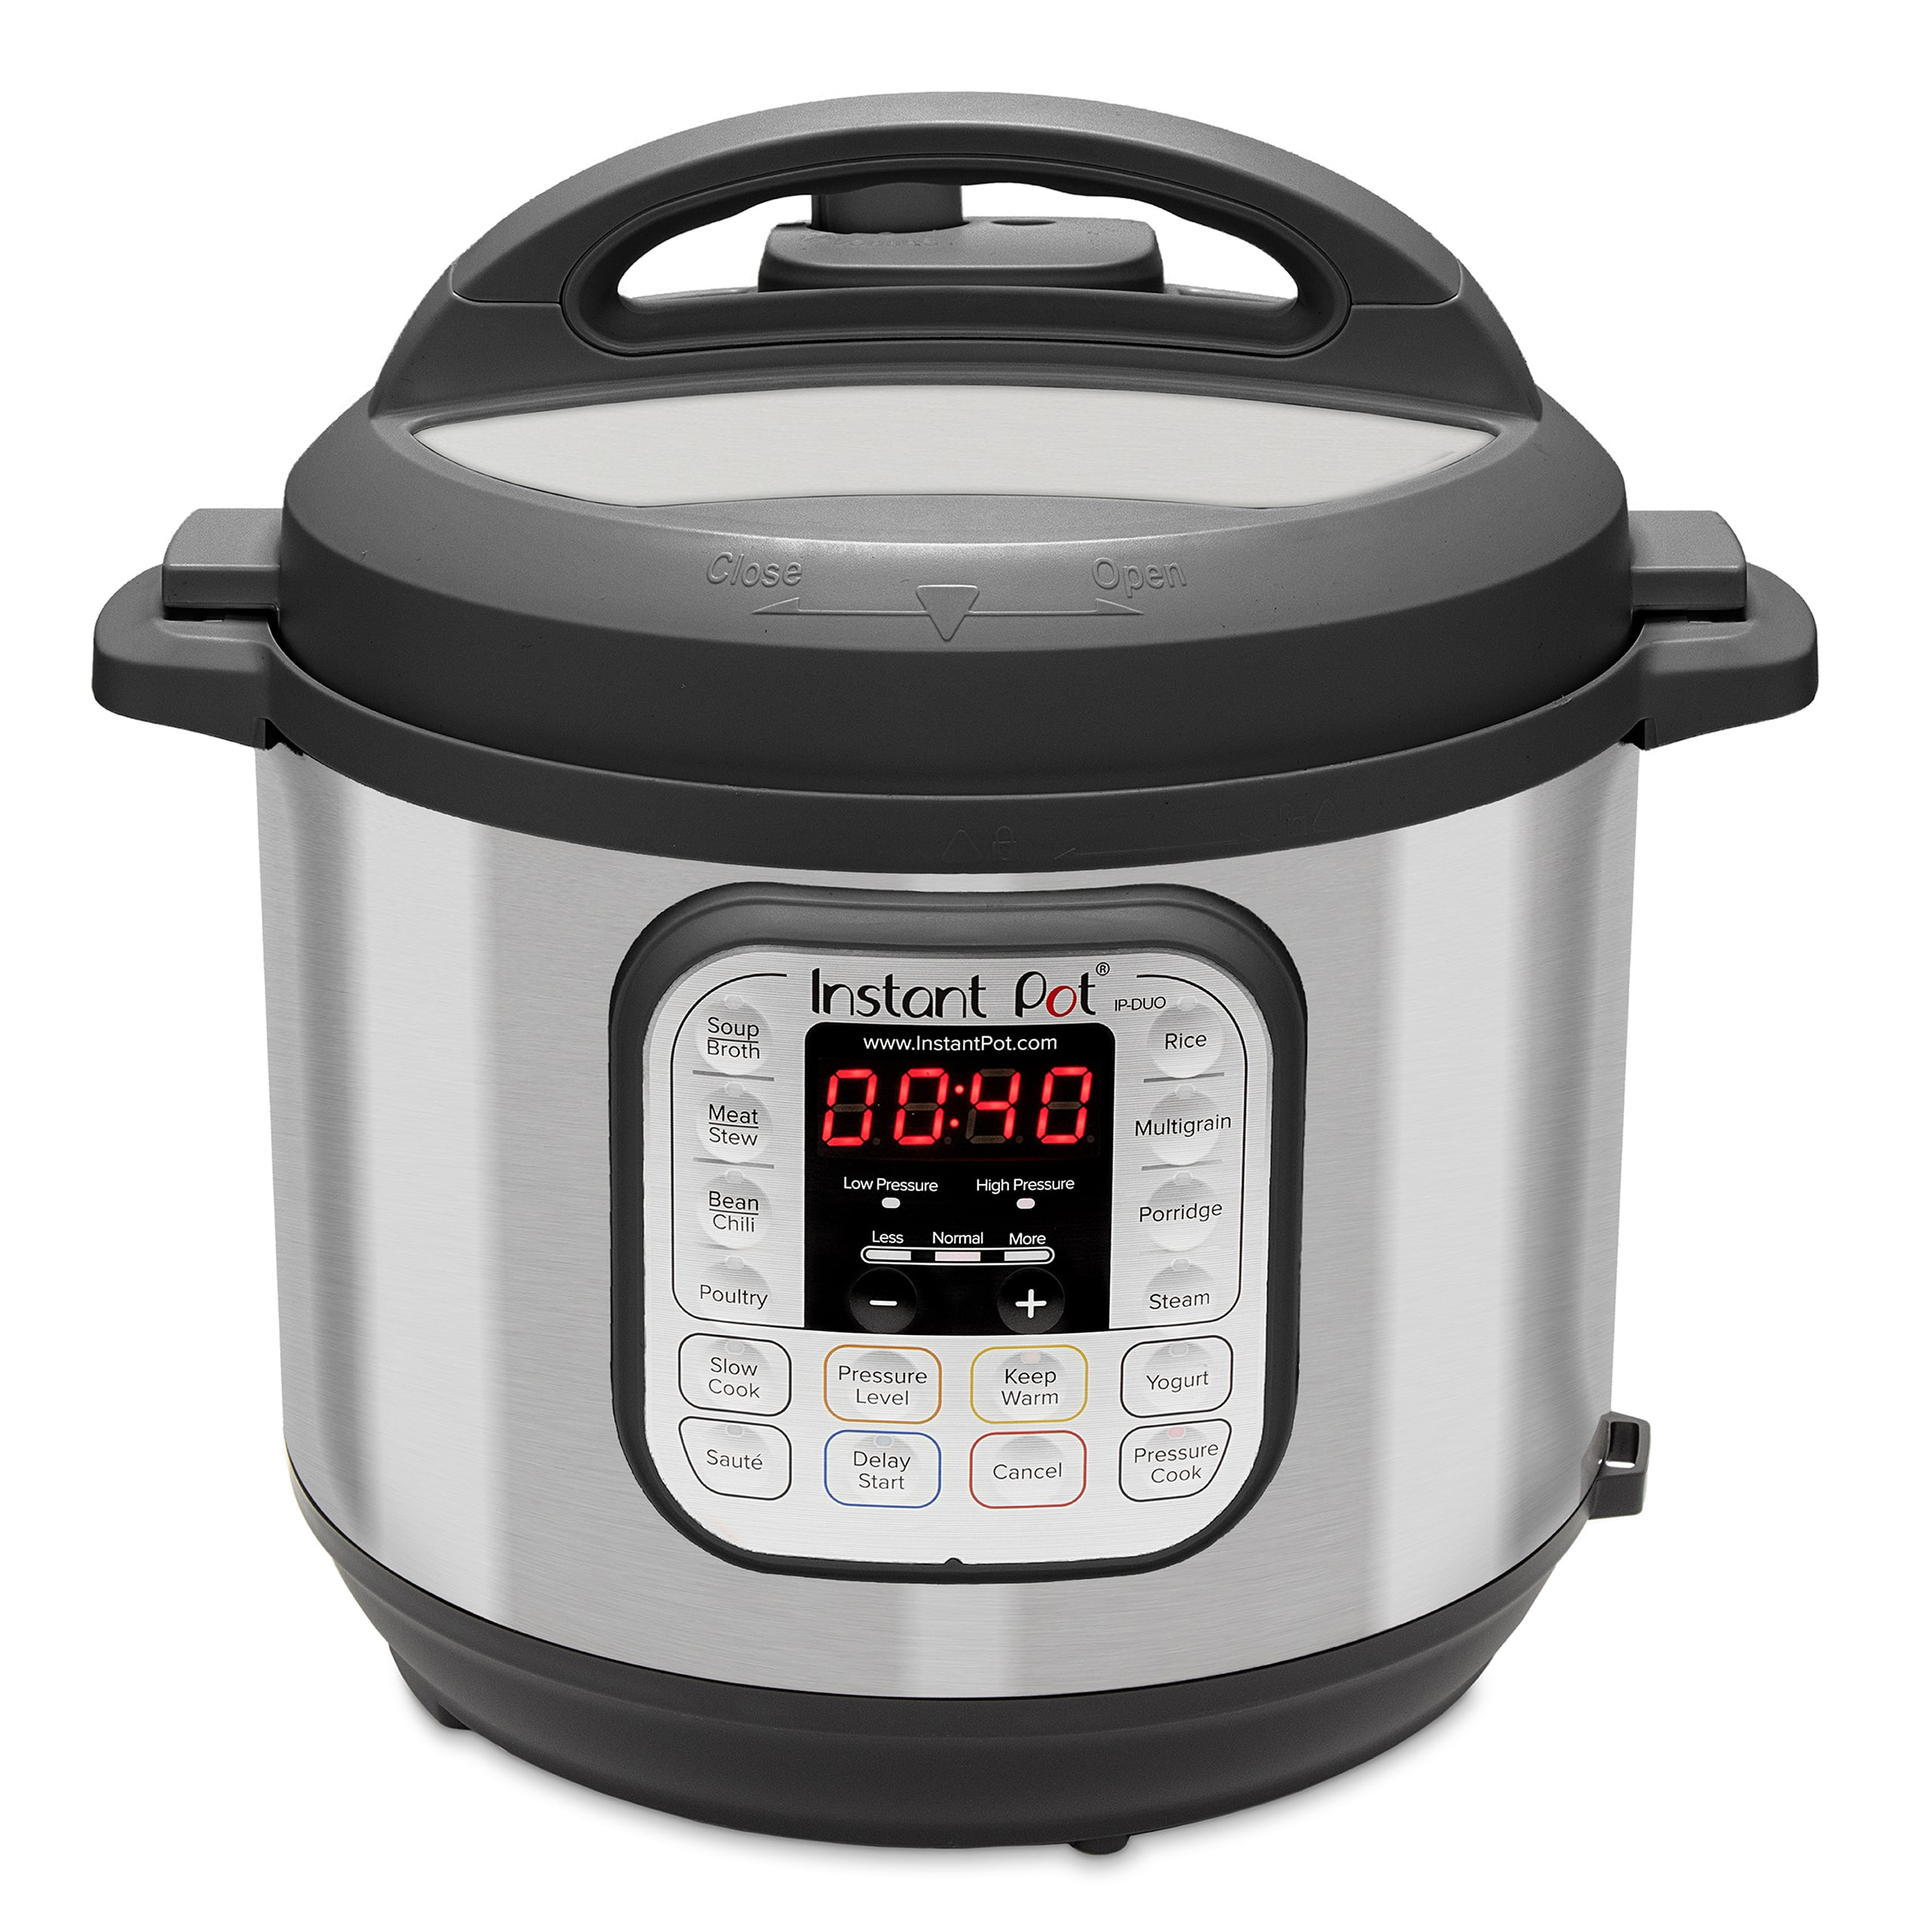 Instant Pot DUO60 6 Qt 7-in-1 Multi-Use Programmable Pressure Cooker, Slow Cooker, Rice Cooker, Sauté, Steamer, Yogurt Maker and Warmer $49